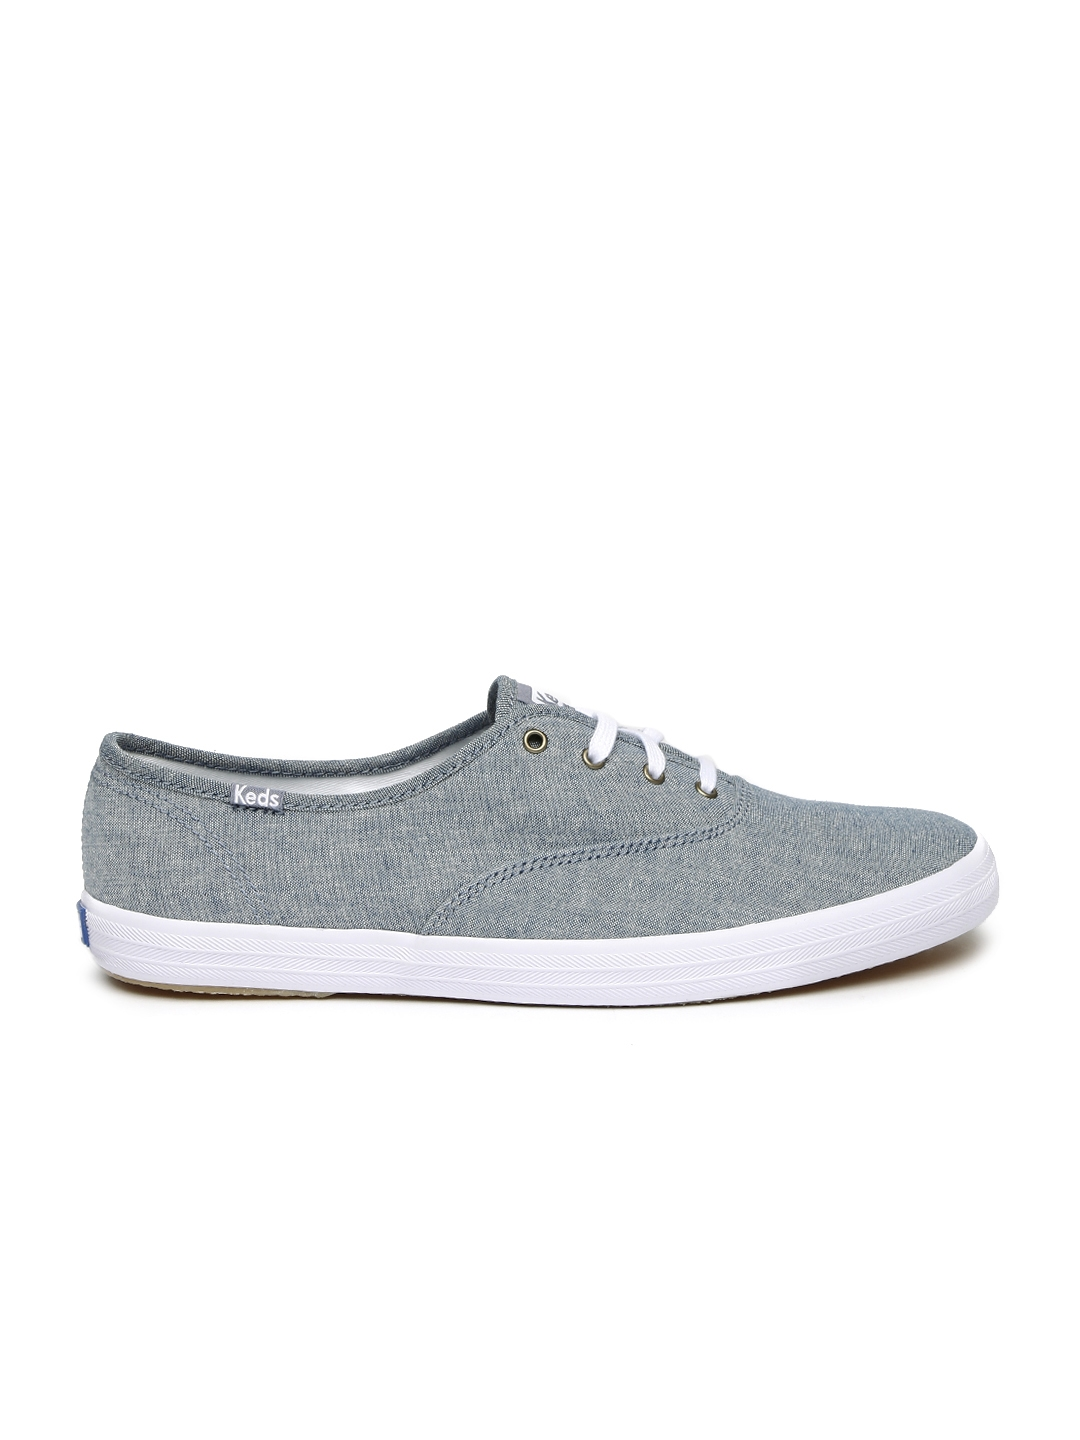 6a65c093dddc7 Buy Keds Women Blue Champion Seasonal Solid Sneakers - Casual Shoes ...